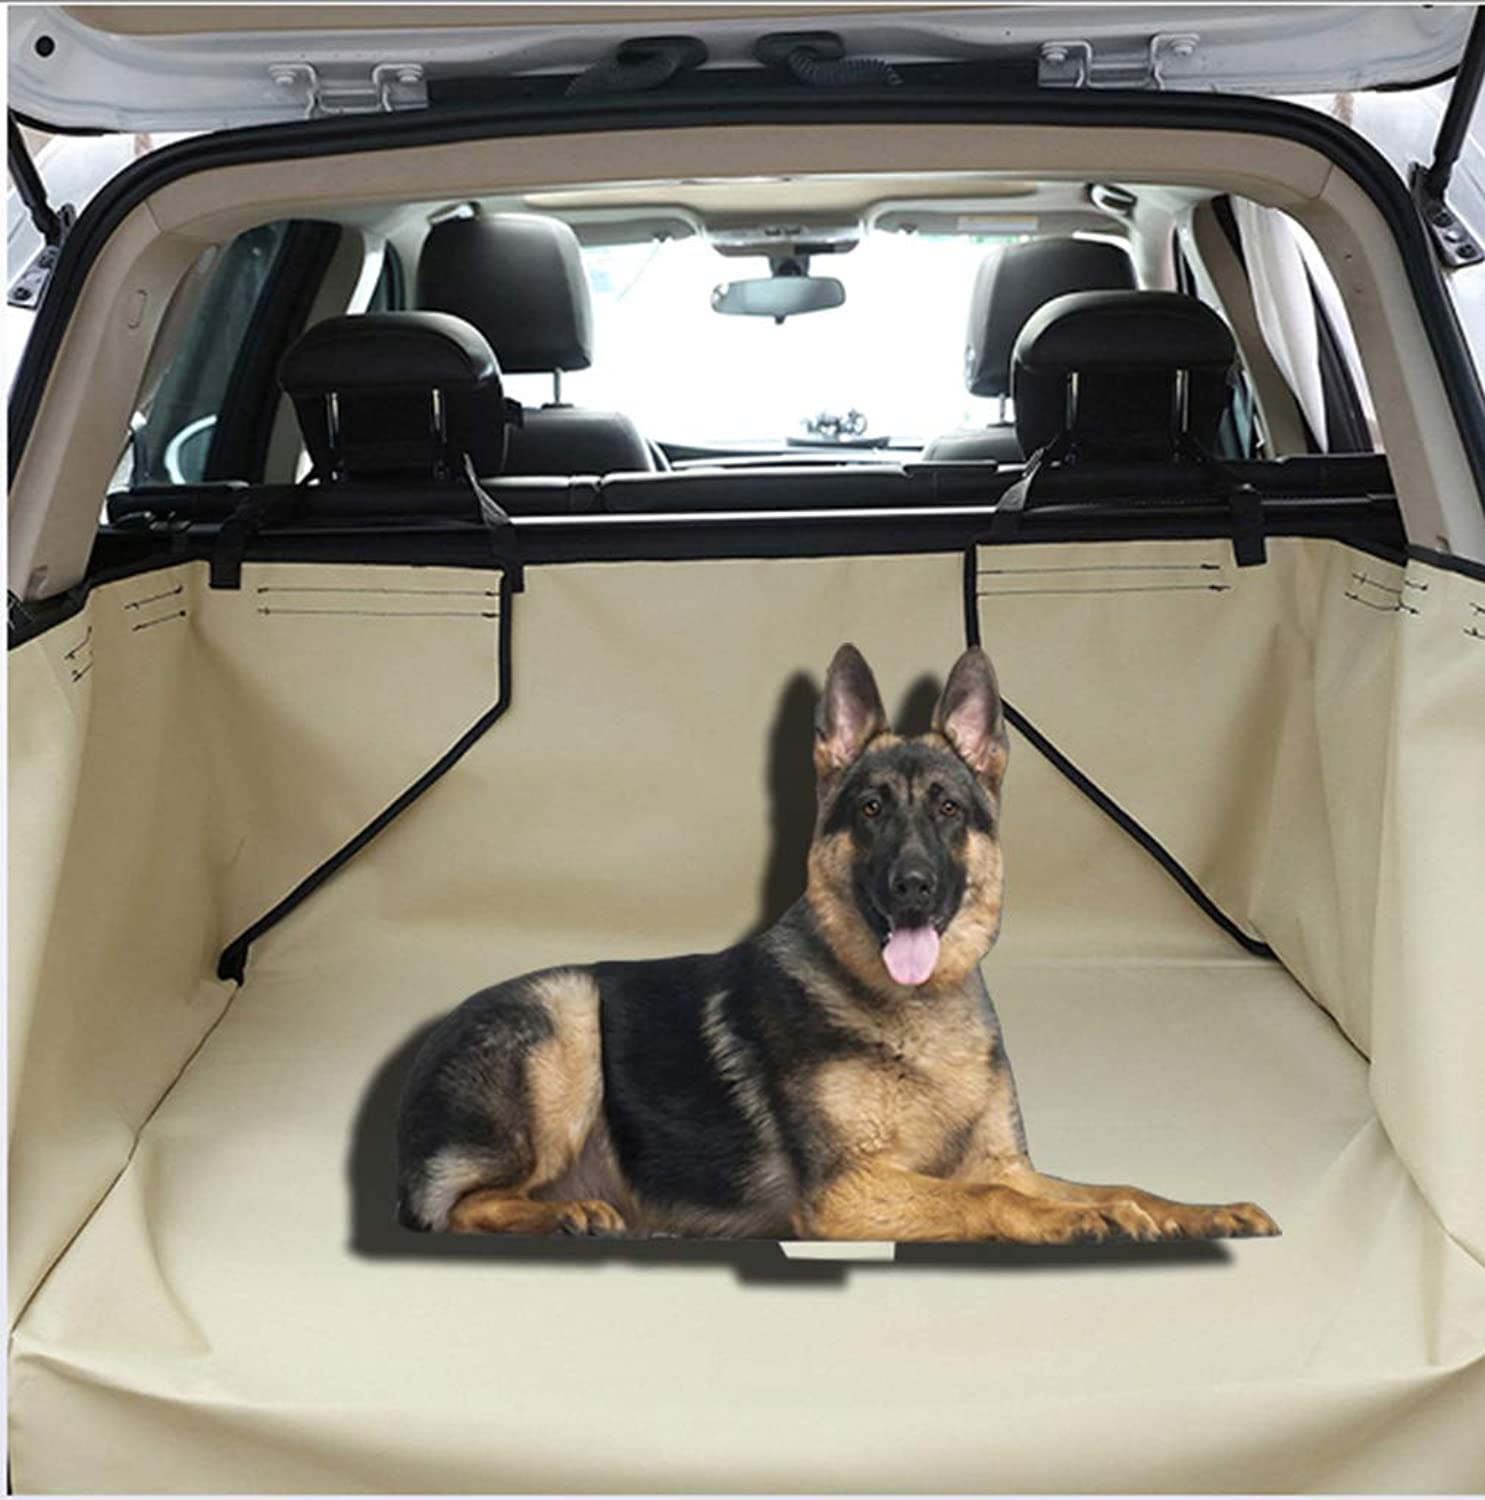 Dog Covers Back Seat Cars, Pet Dog Trunk Cargo Liner SUV Dog Car Pet Products,Congreenible Comfort Accessory for SUVs,Washable Pet Backseat Predector,Khaki